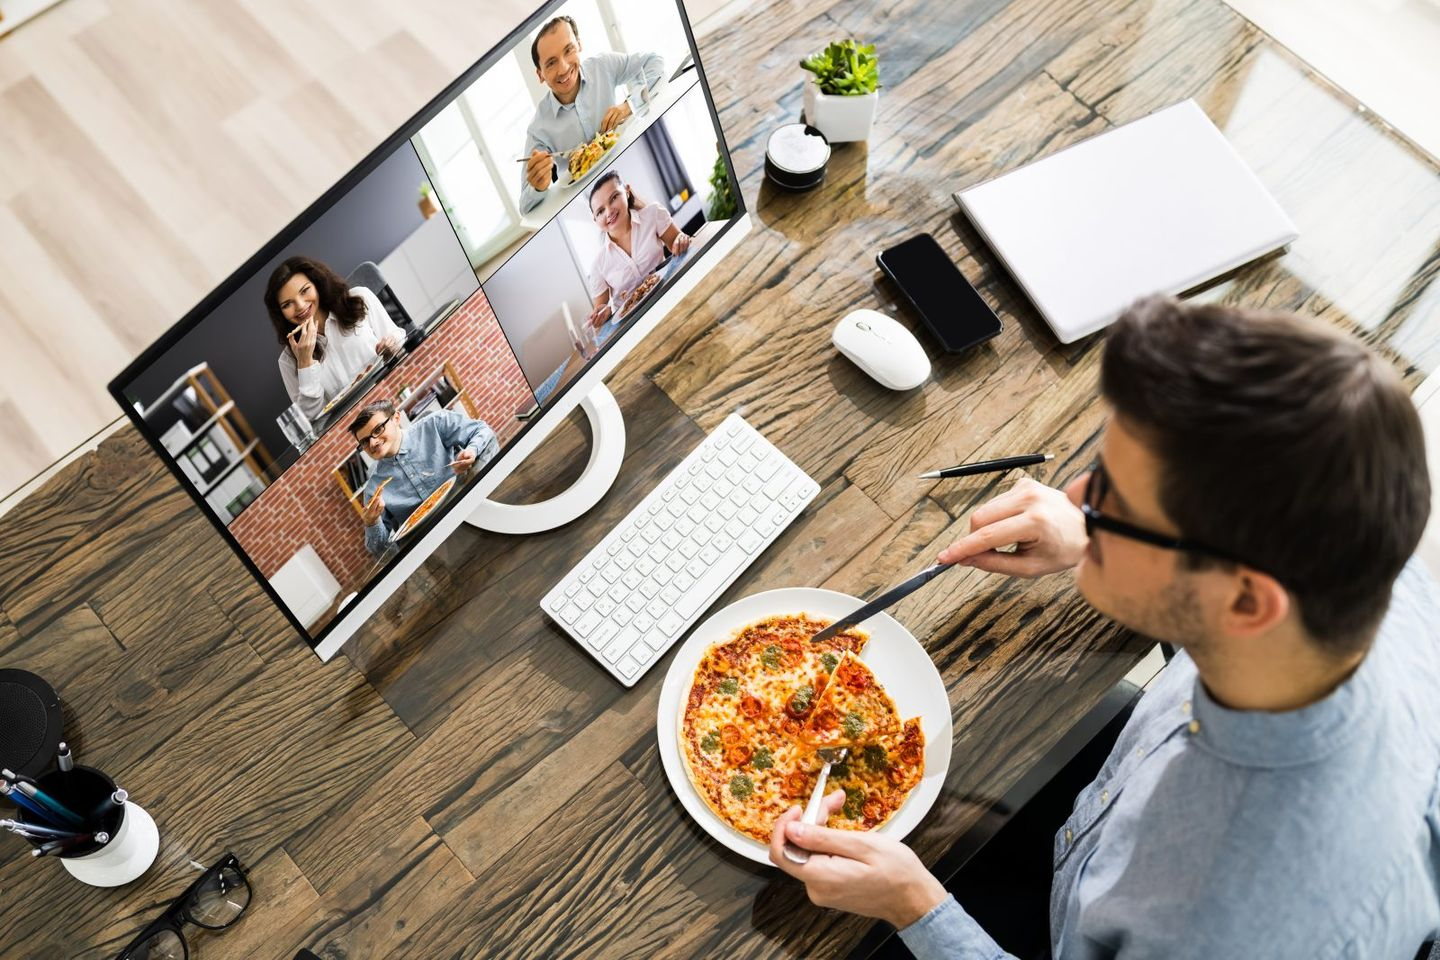 Man eating dinner while on zoom